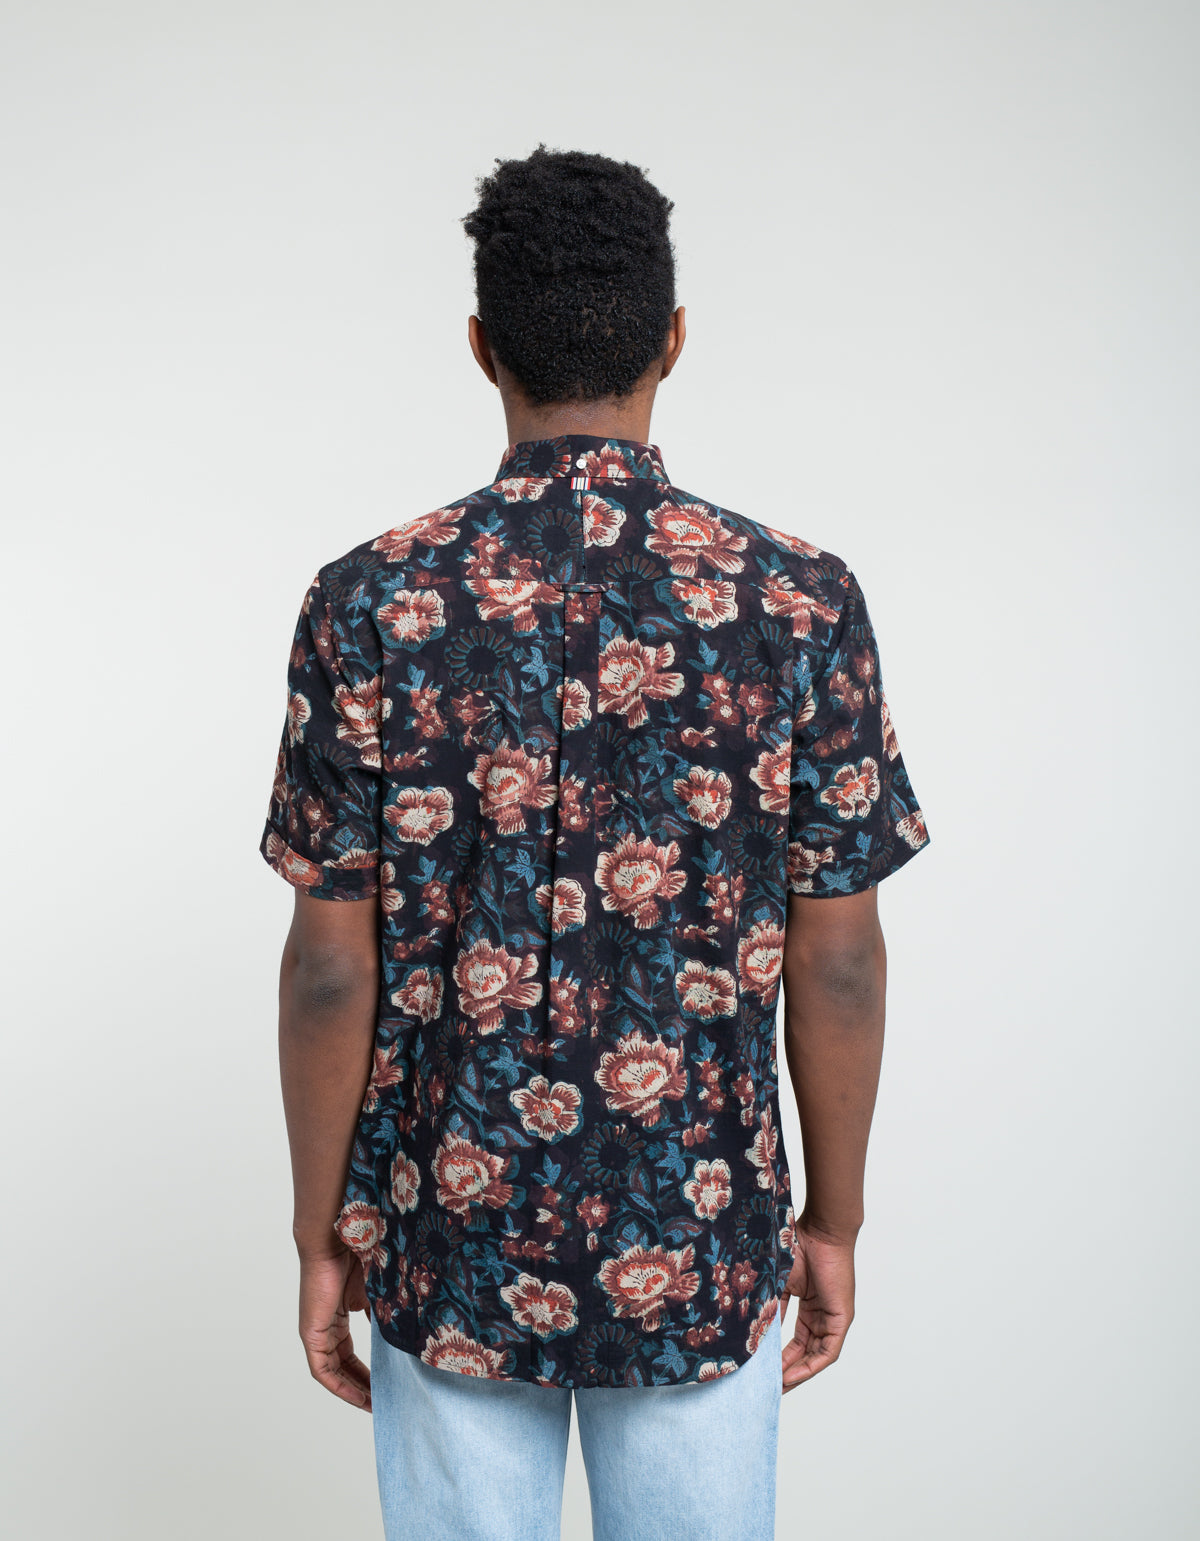 Kardo Sai Short Sleeve Shirt Purple Floral